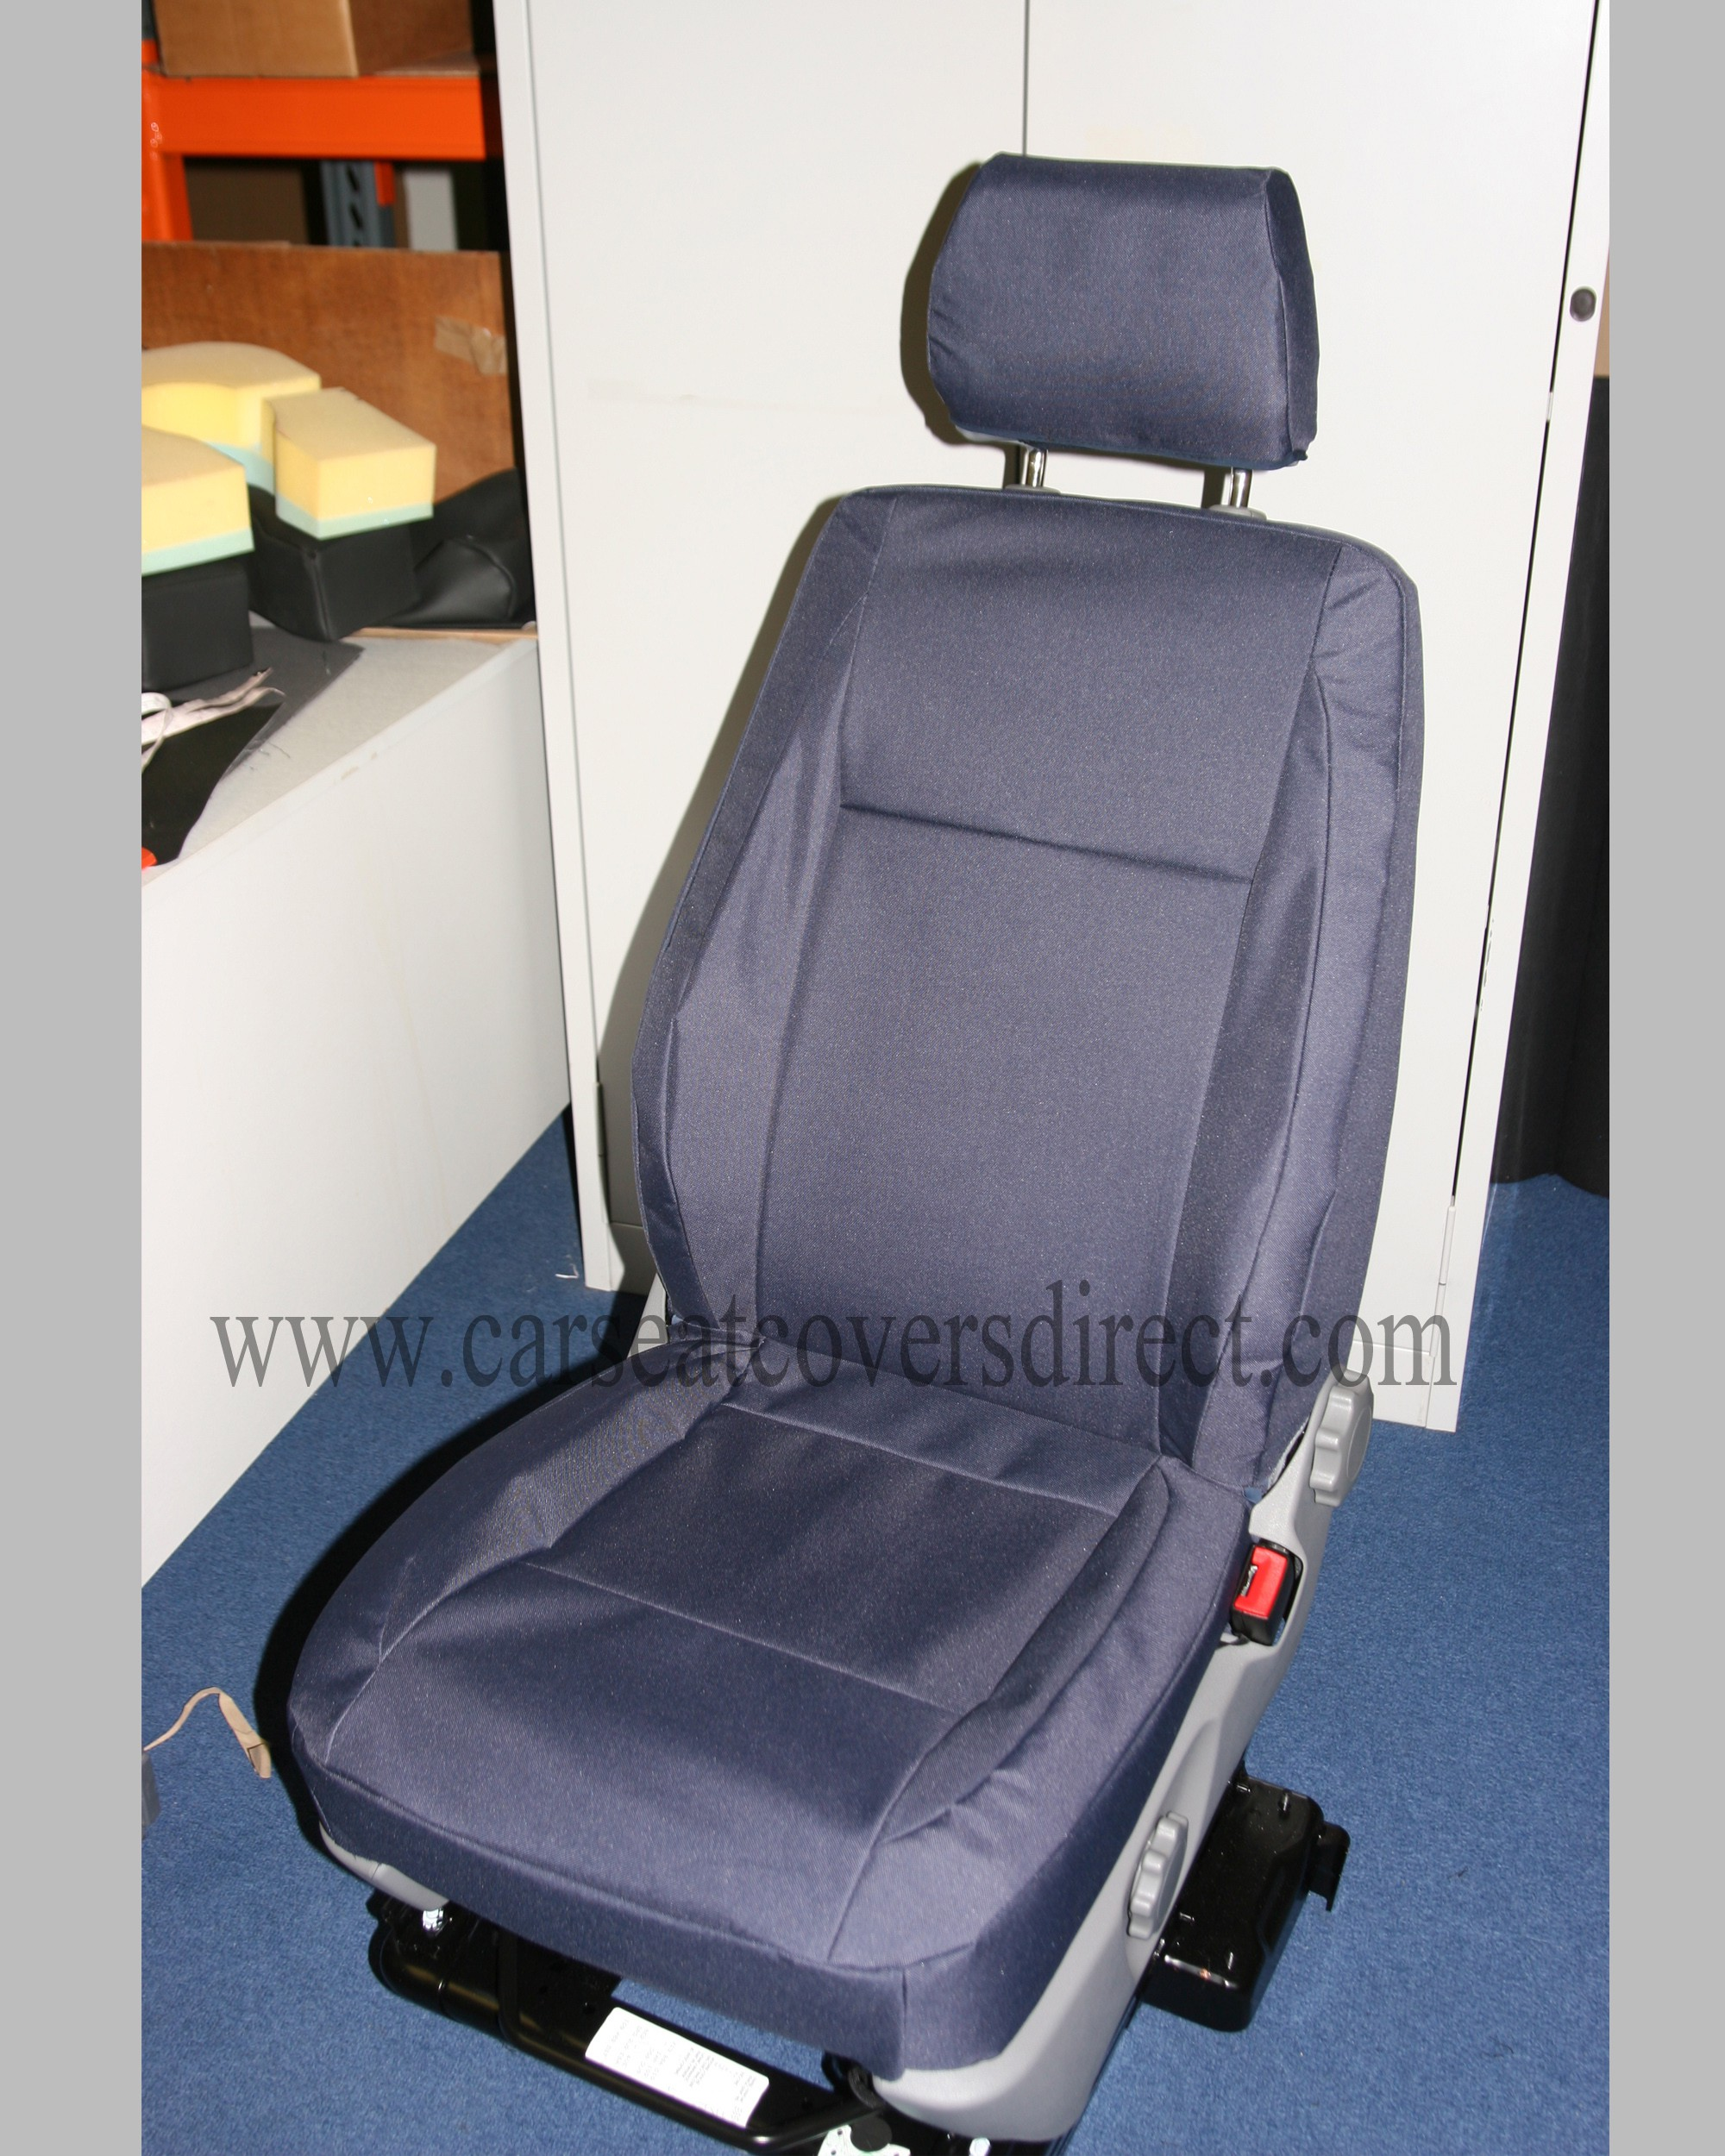 Volkswagen VW Transporter T5 Heavy Duty Seat Covers